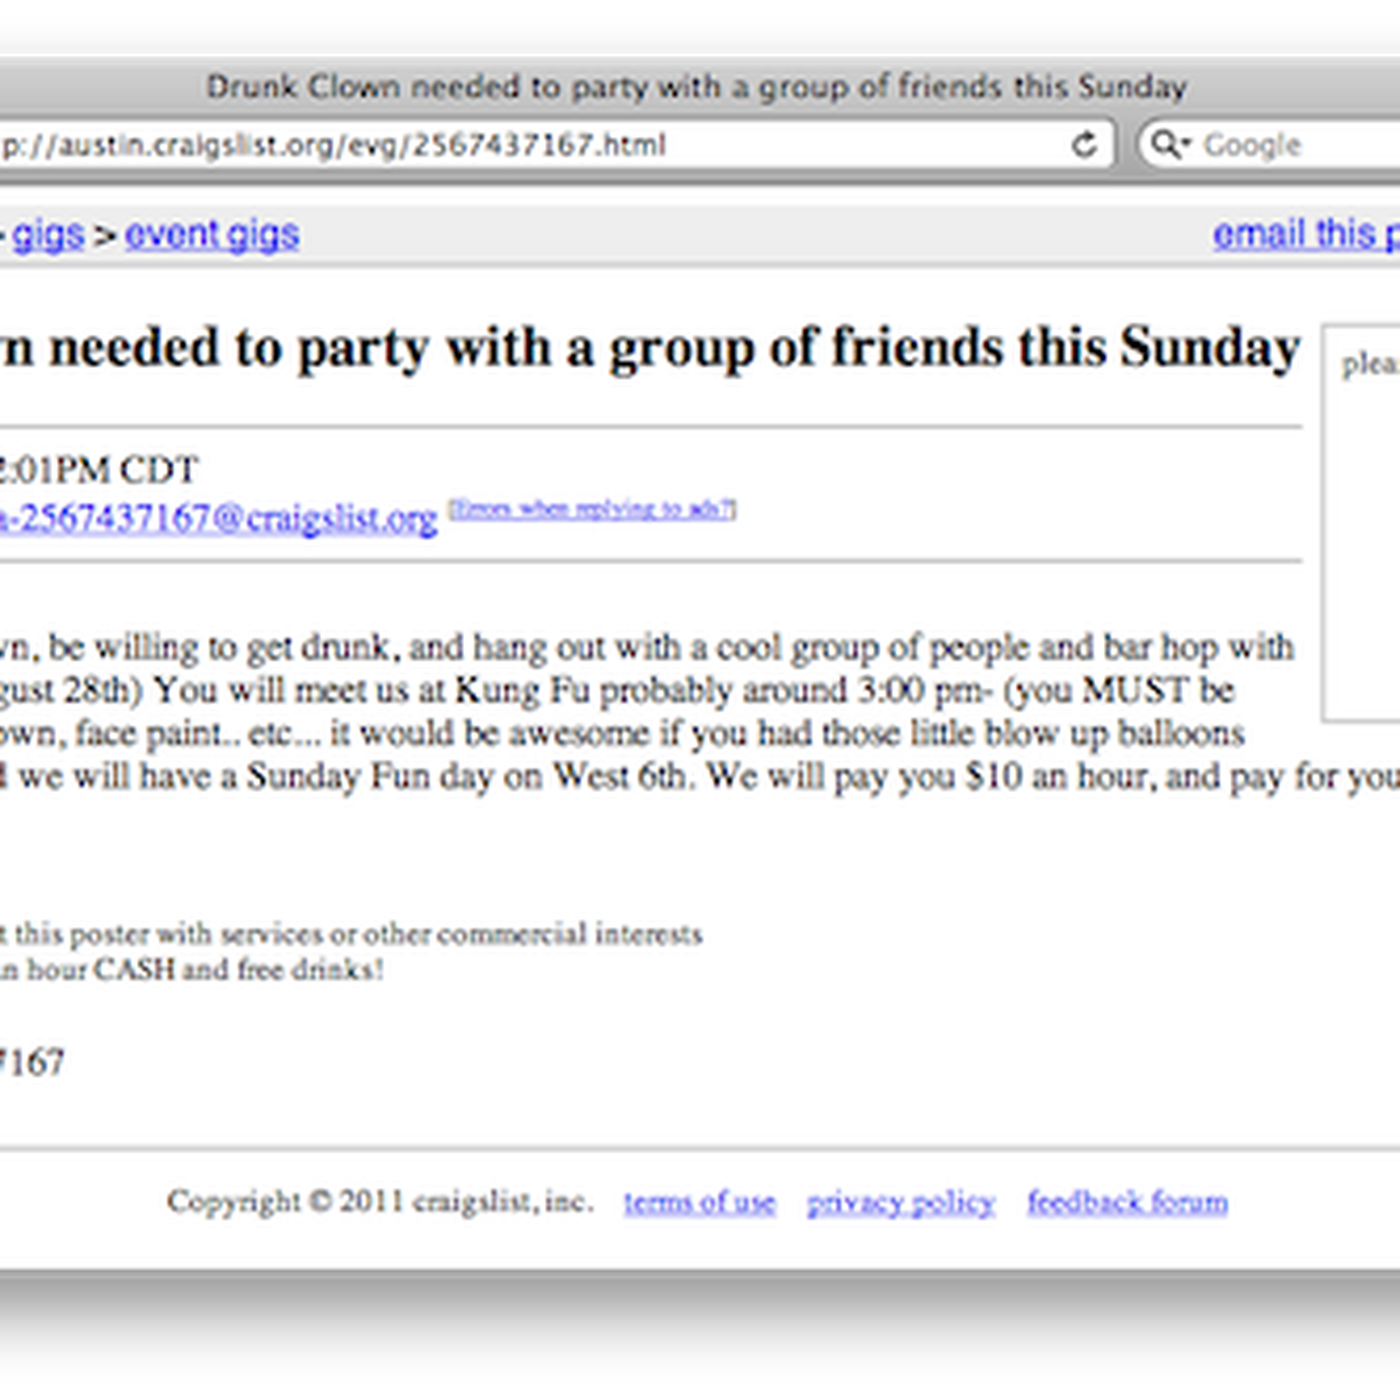 Craigslist Ad Seeks Drunk Clown For $10 an Hour to Party Eater